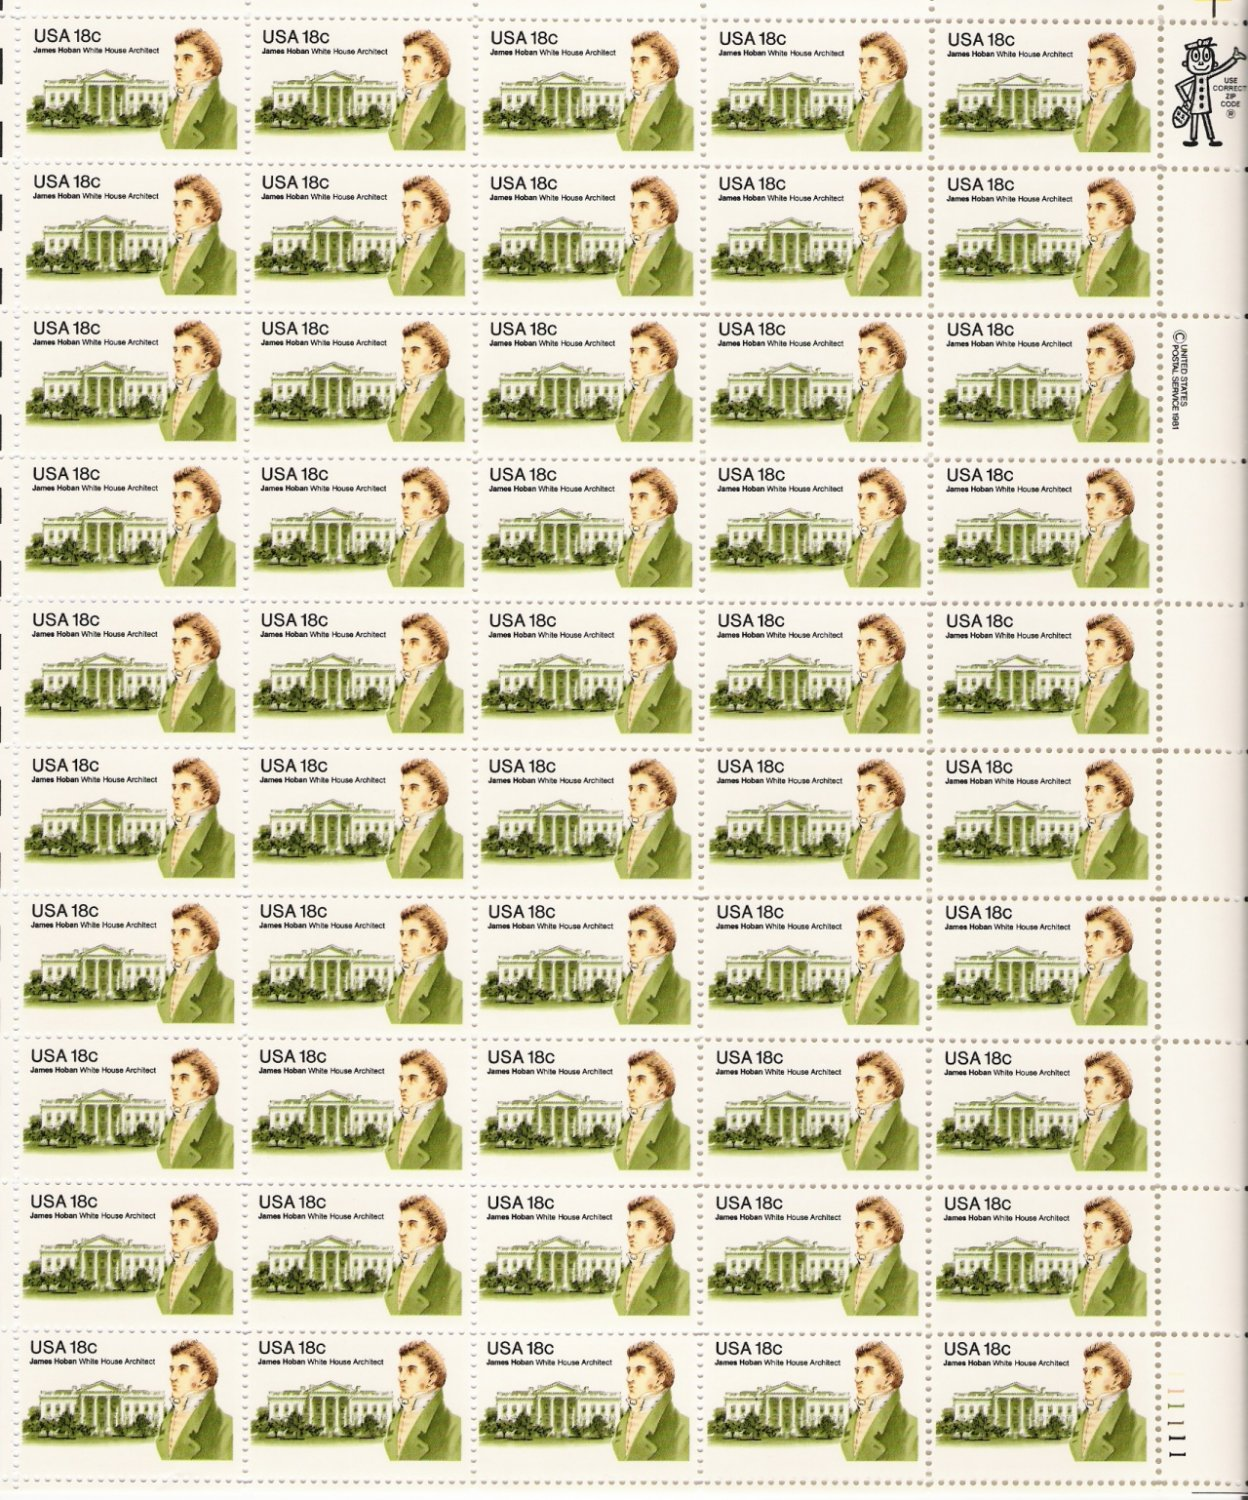 US Scott 1935 - Sheet of 50 - 18c James Hoban - Mint Never Hinged